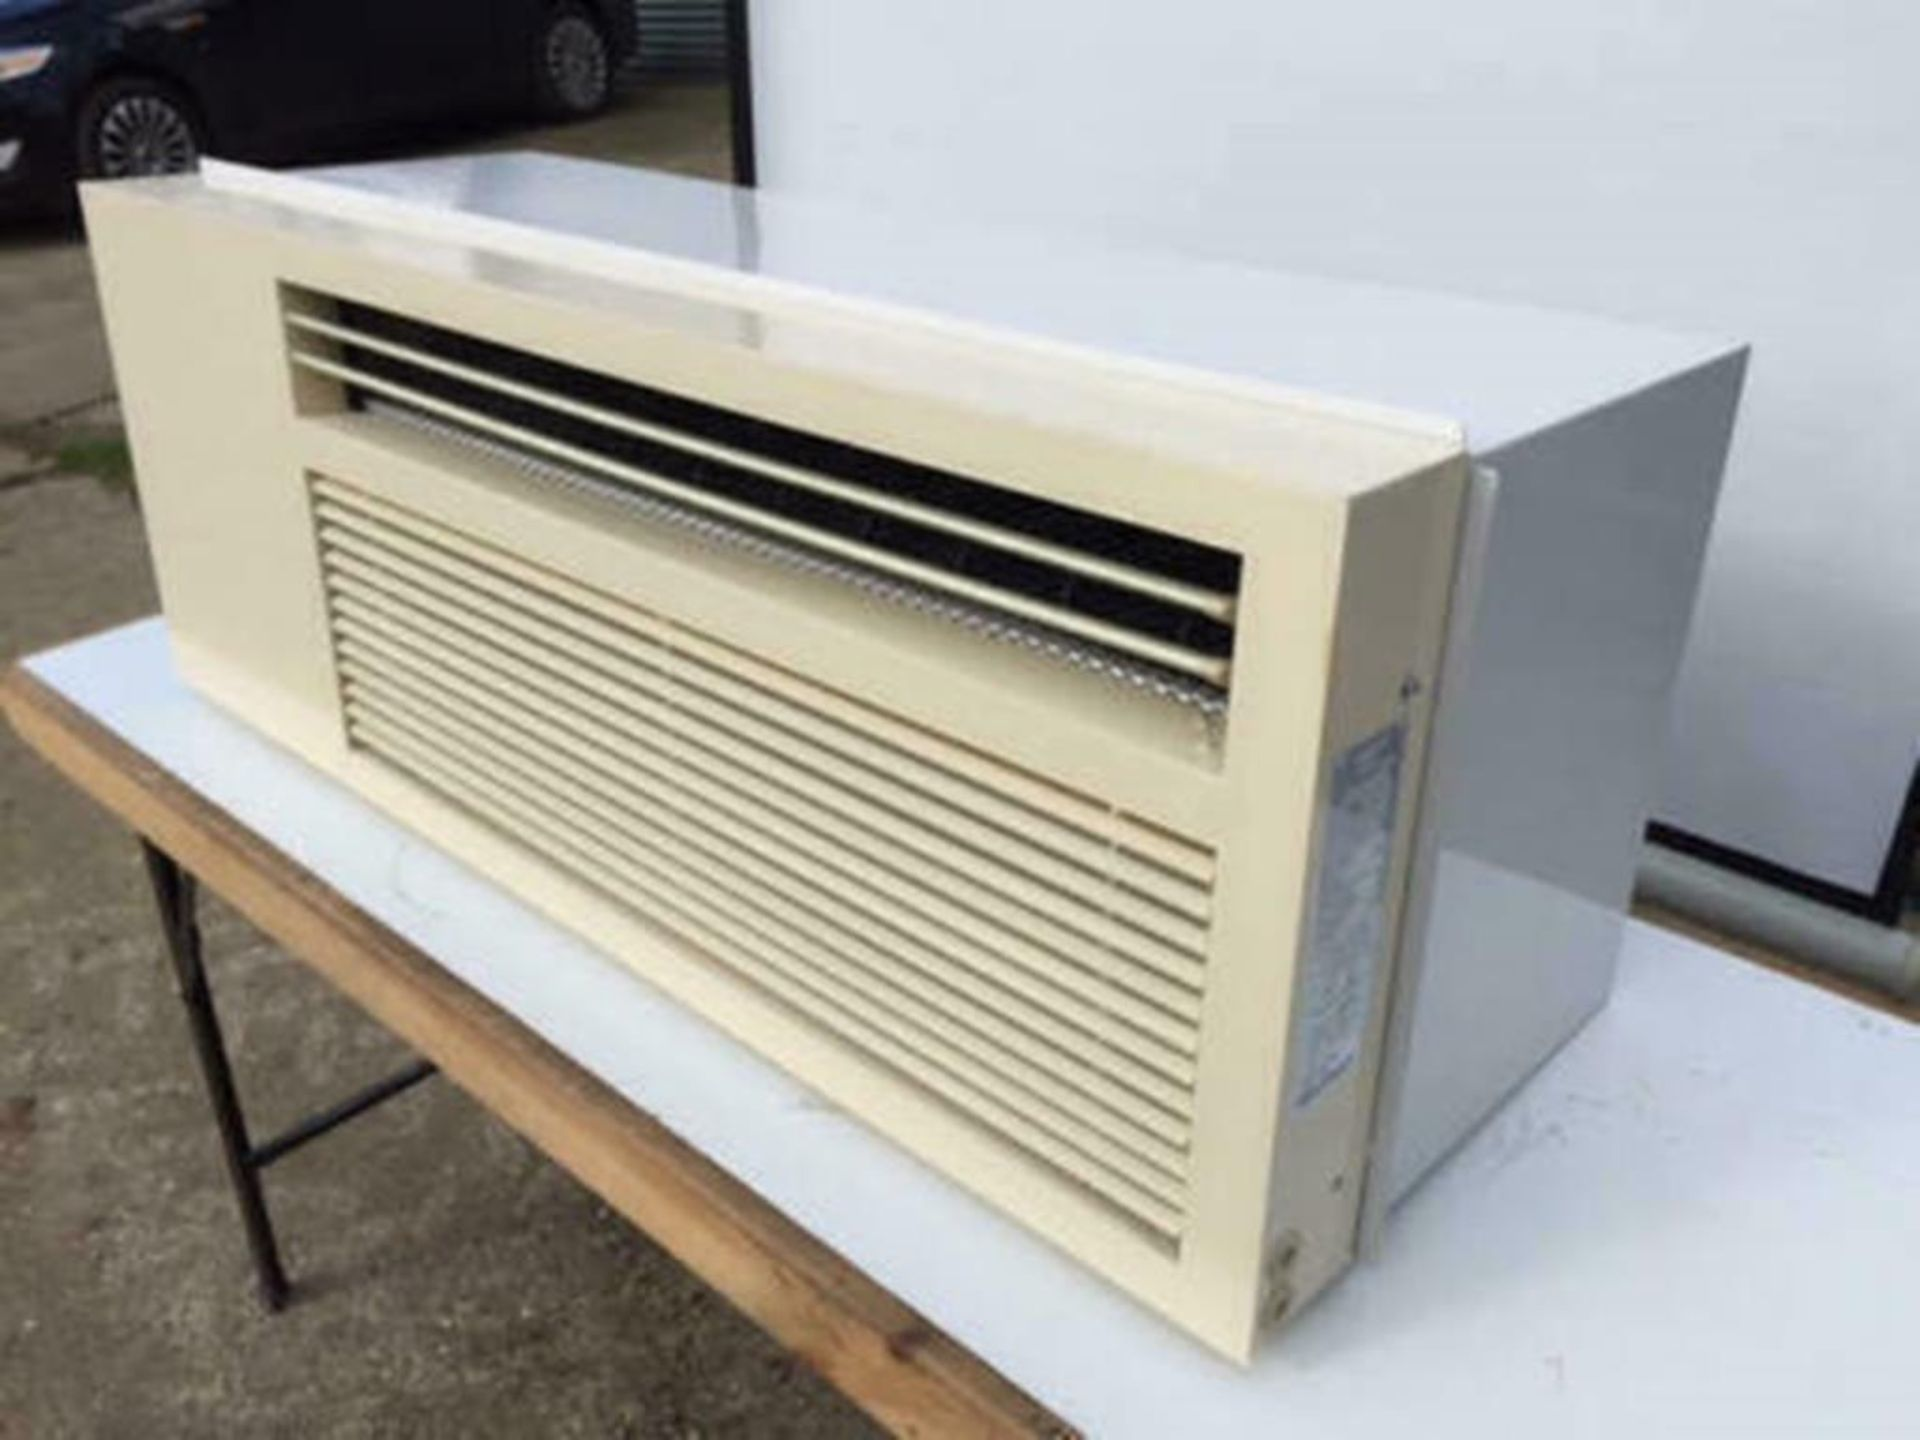 Brand New and Boxed Eco Air Conditioning Heat Pump Through Wall Unit - Image 8 of 11